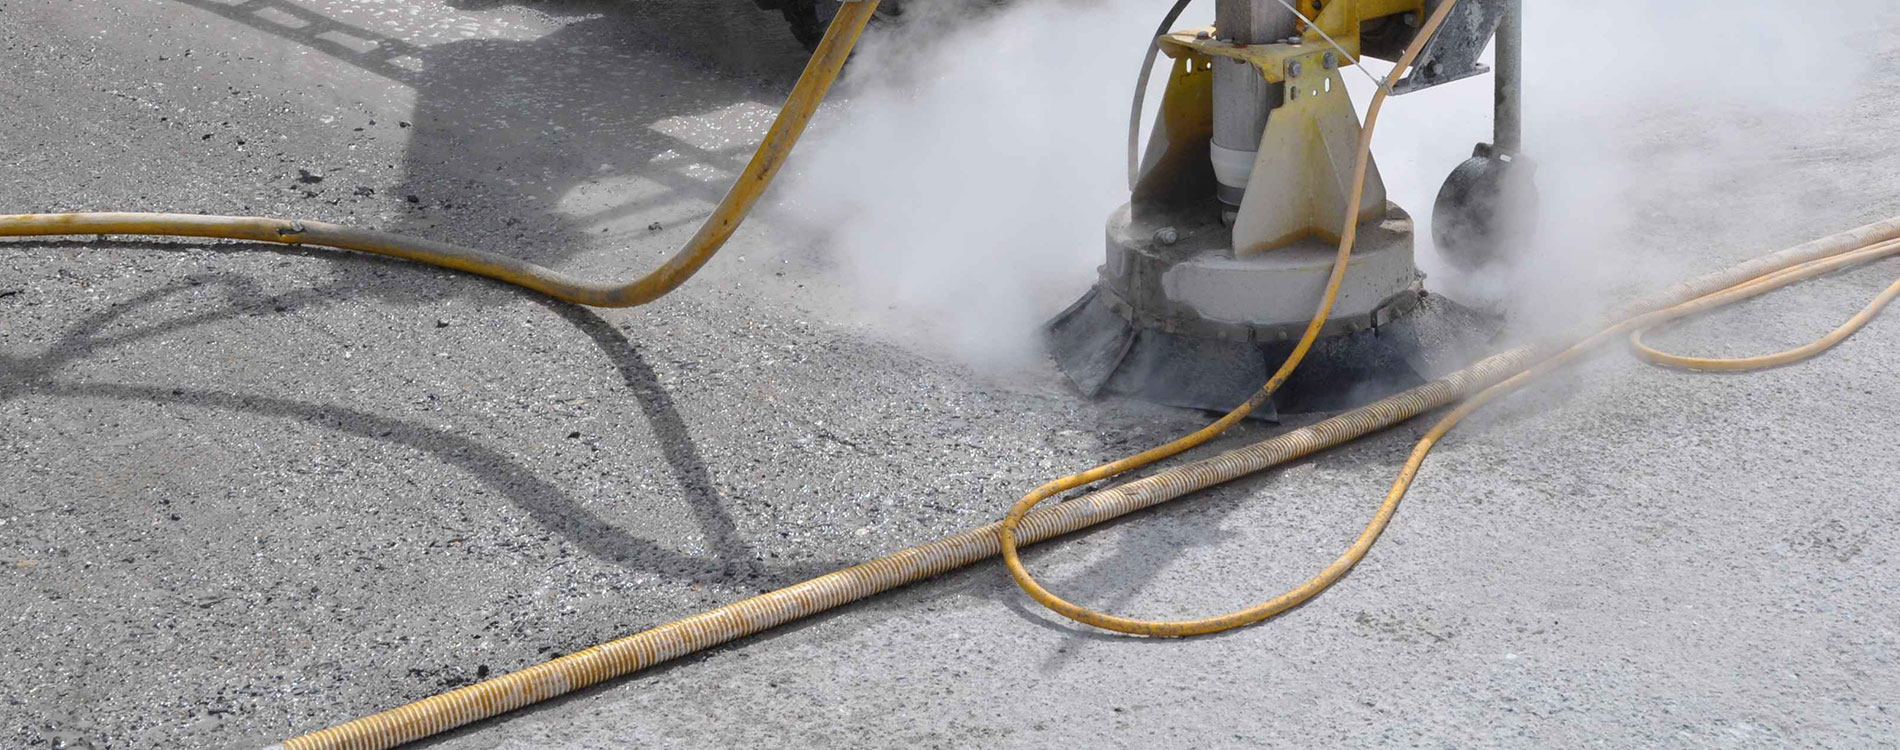 WA – CONCRETE REPAIR AND PROTECTION COURSE